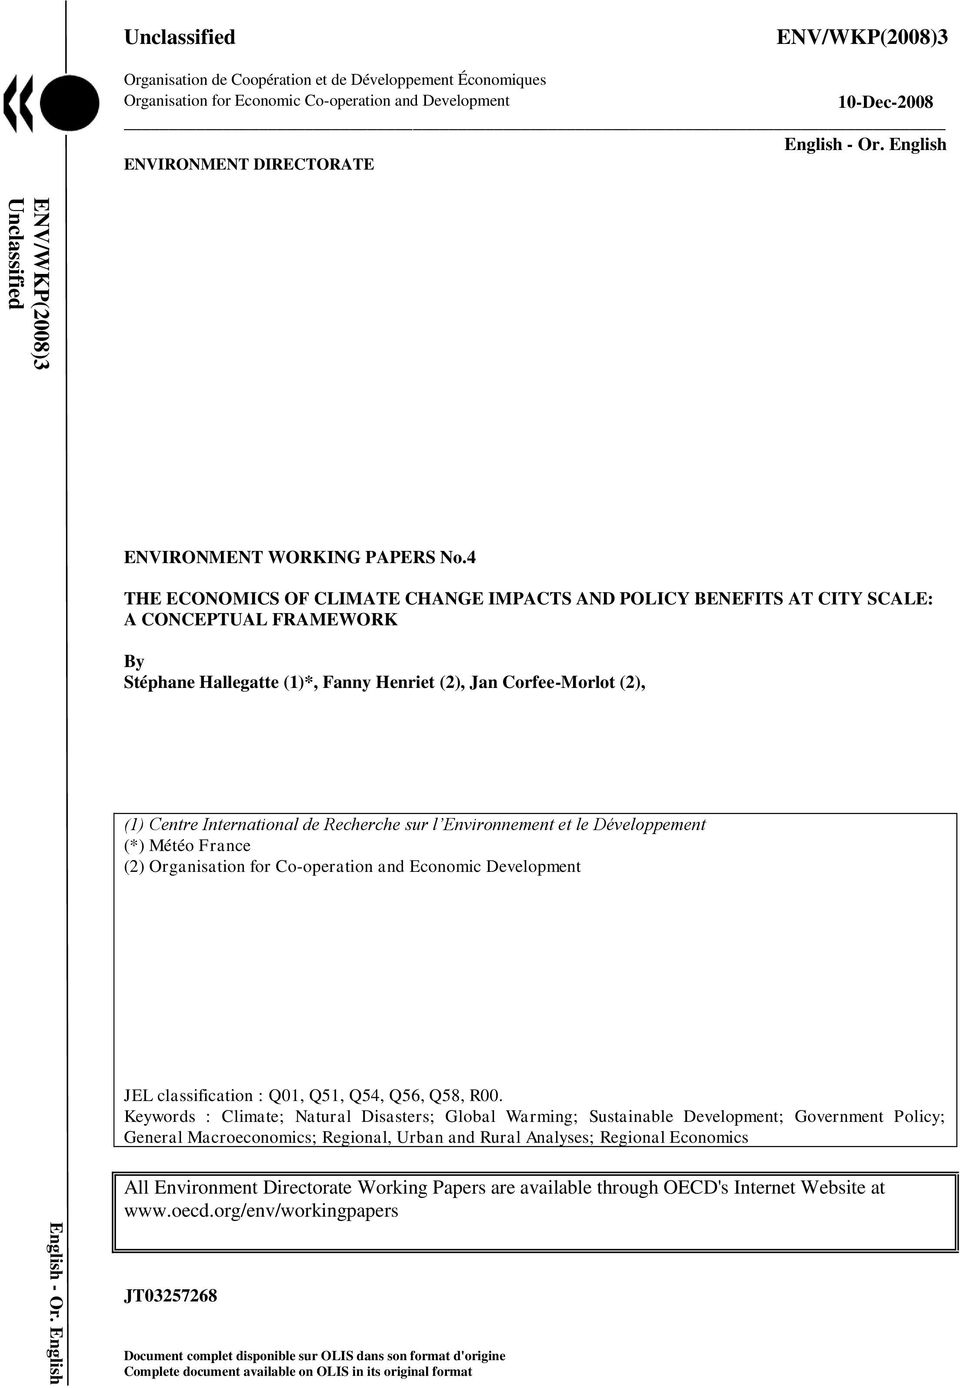 English ENVIRONMENT DIRECTORATE ENVIRONMENT WORKING PAPERS No.